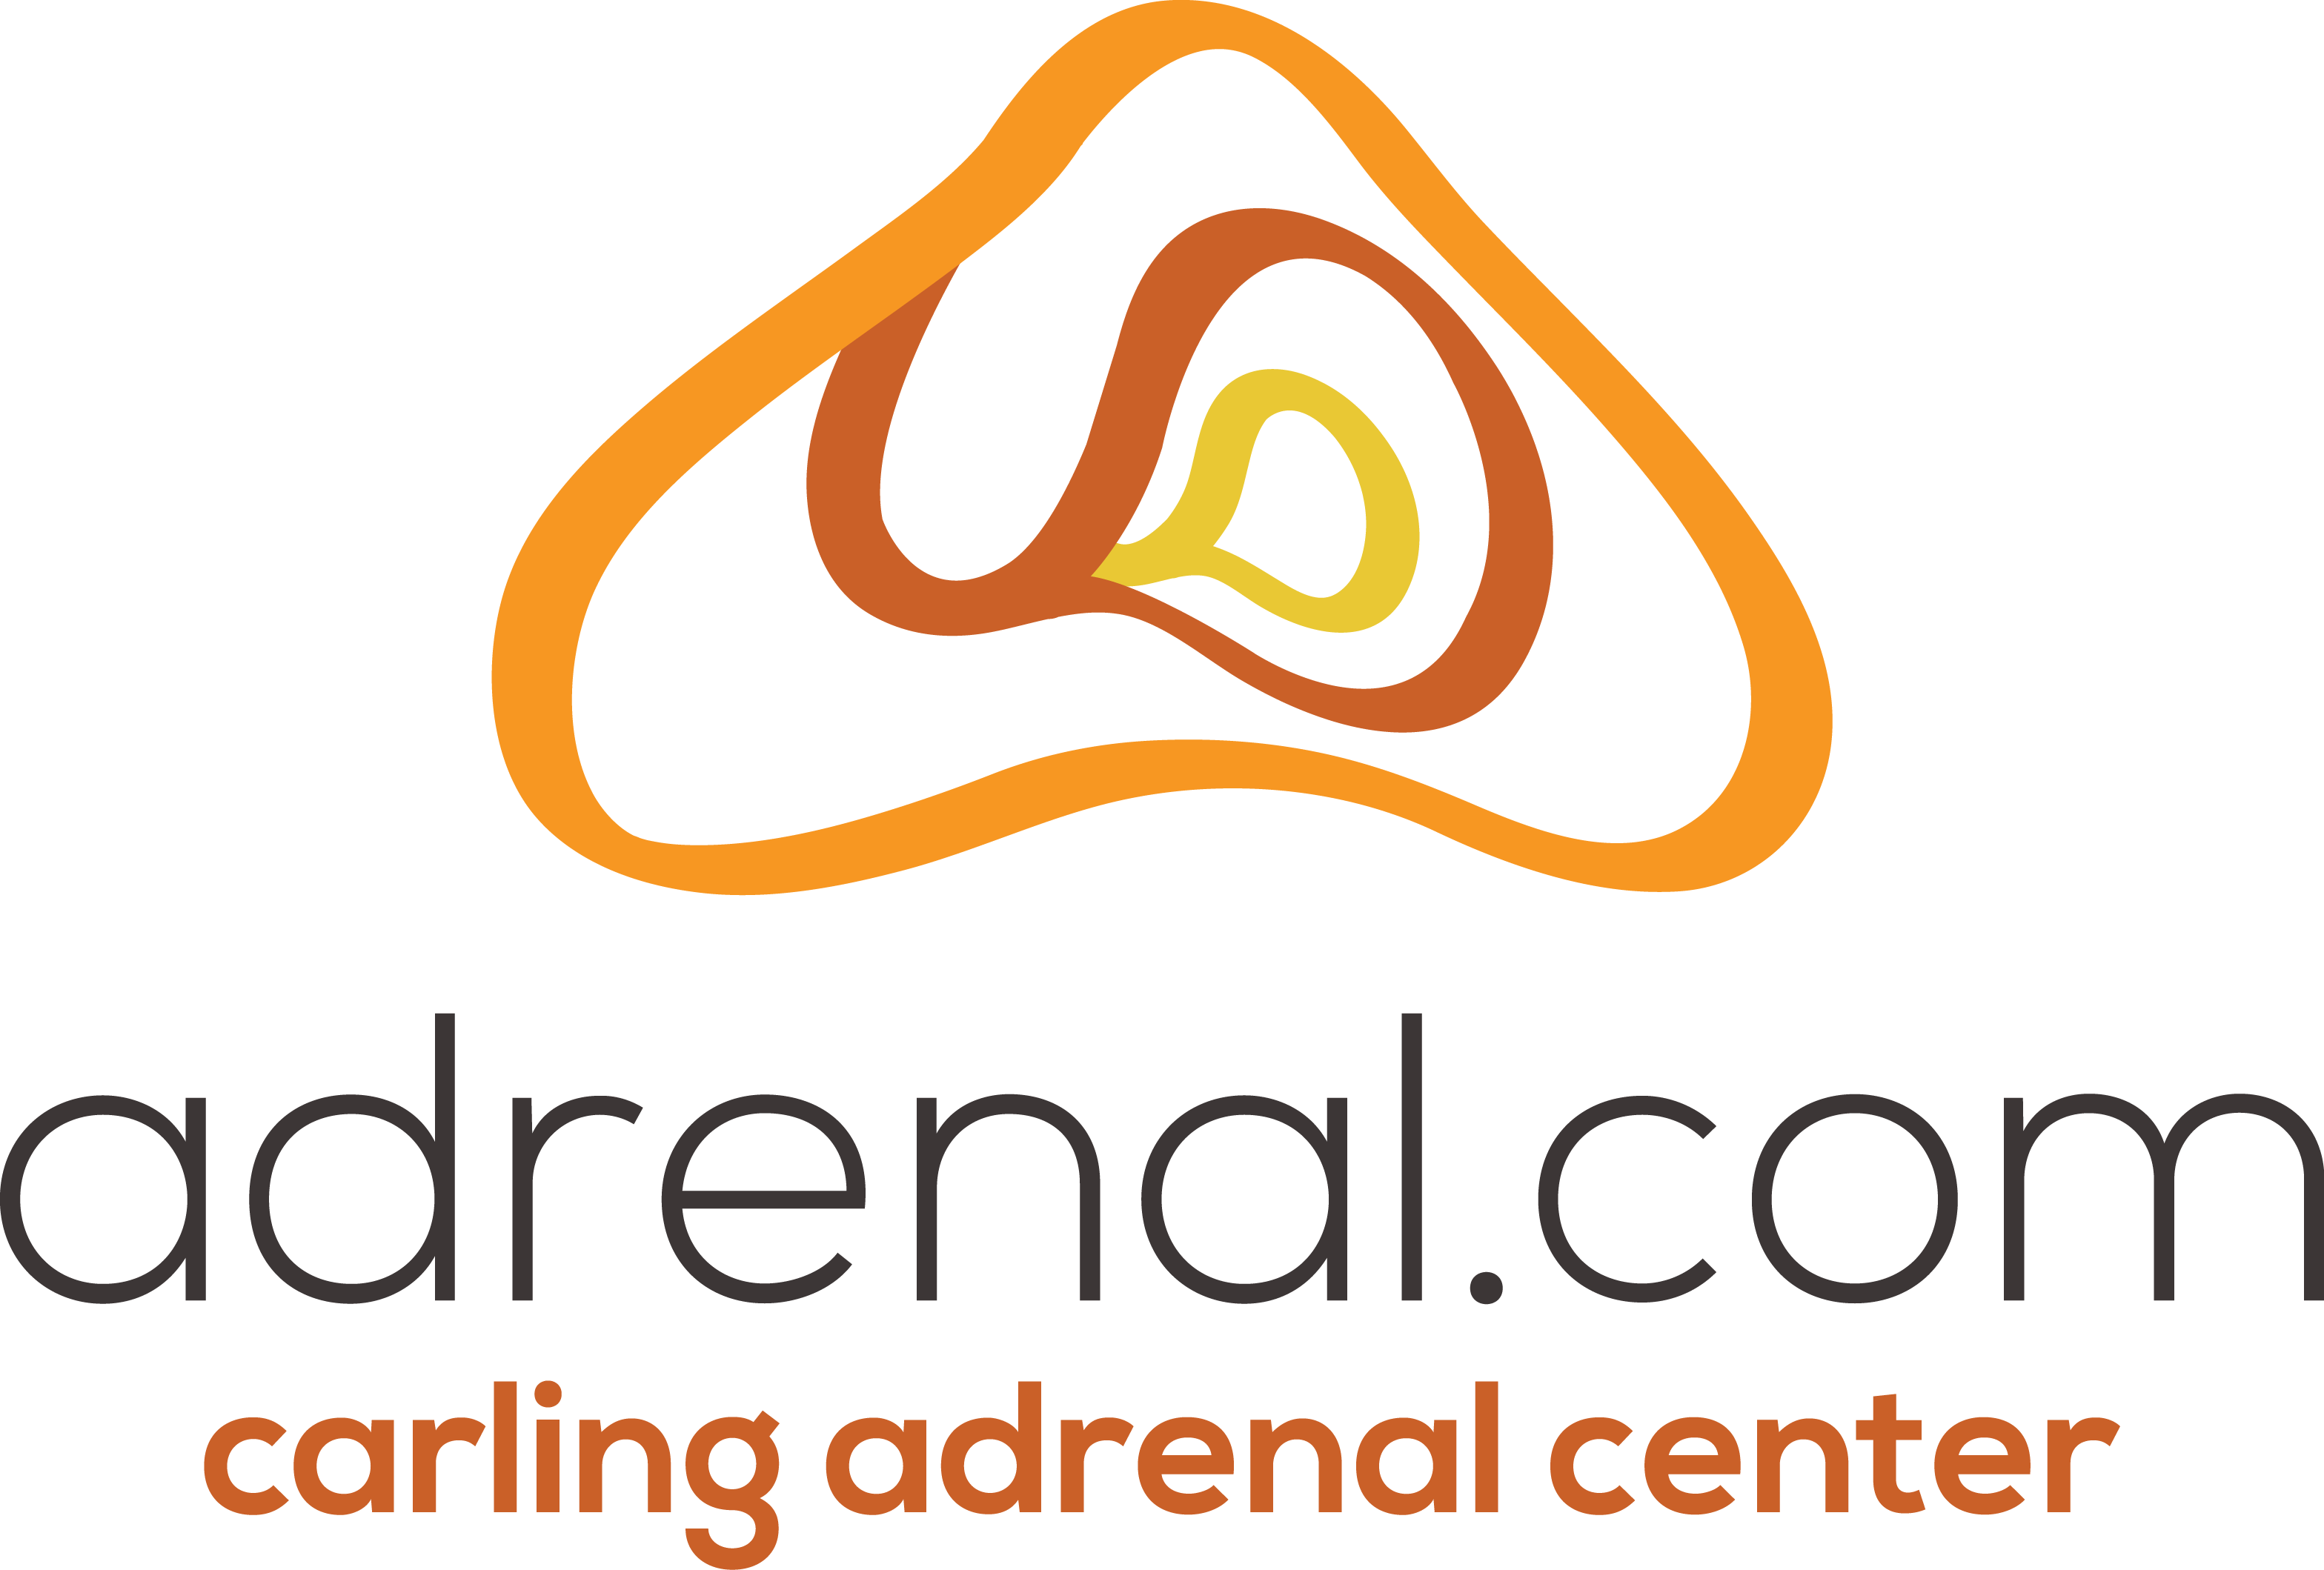 adrenal.com is a comprehensive and easy to understand source for information on all adrenal disorders.